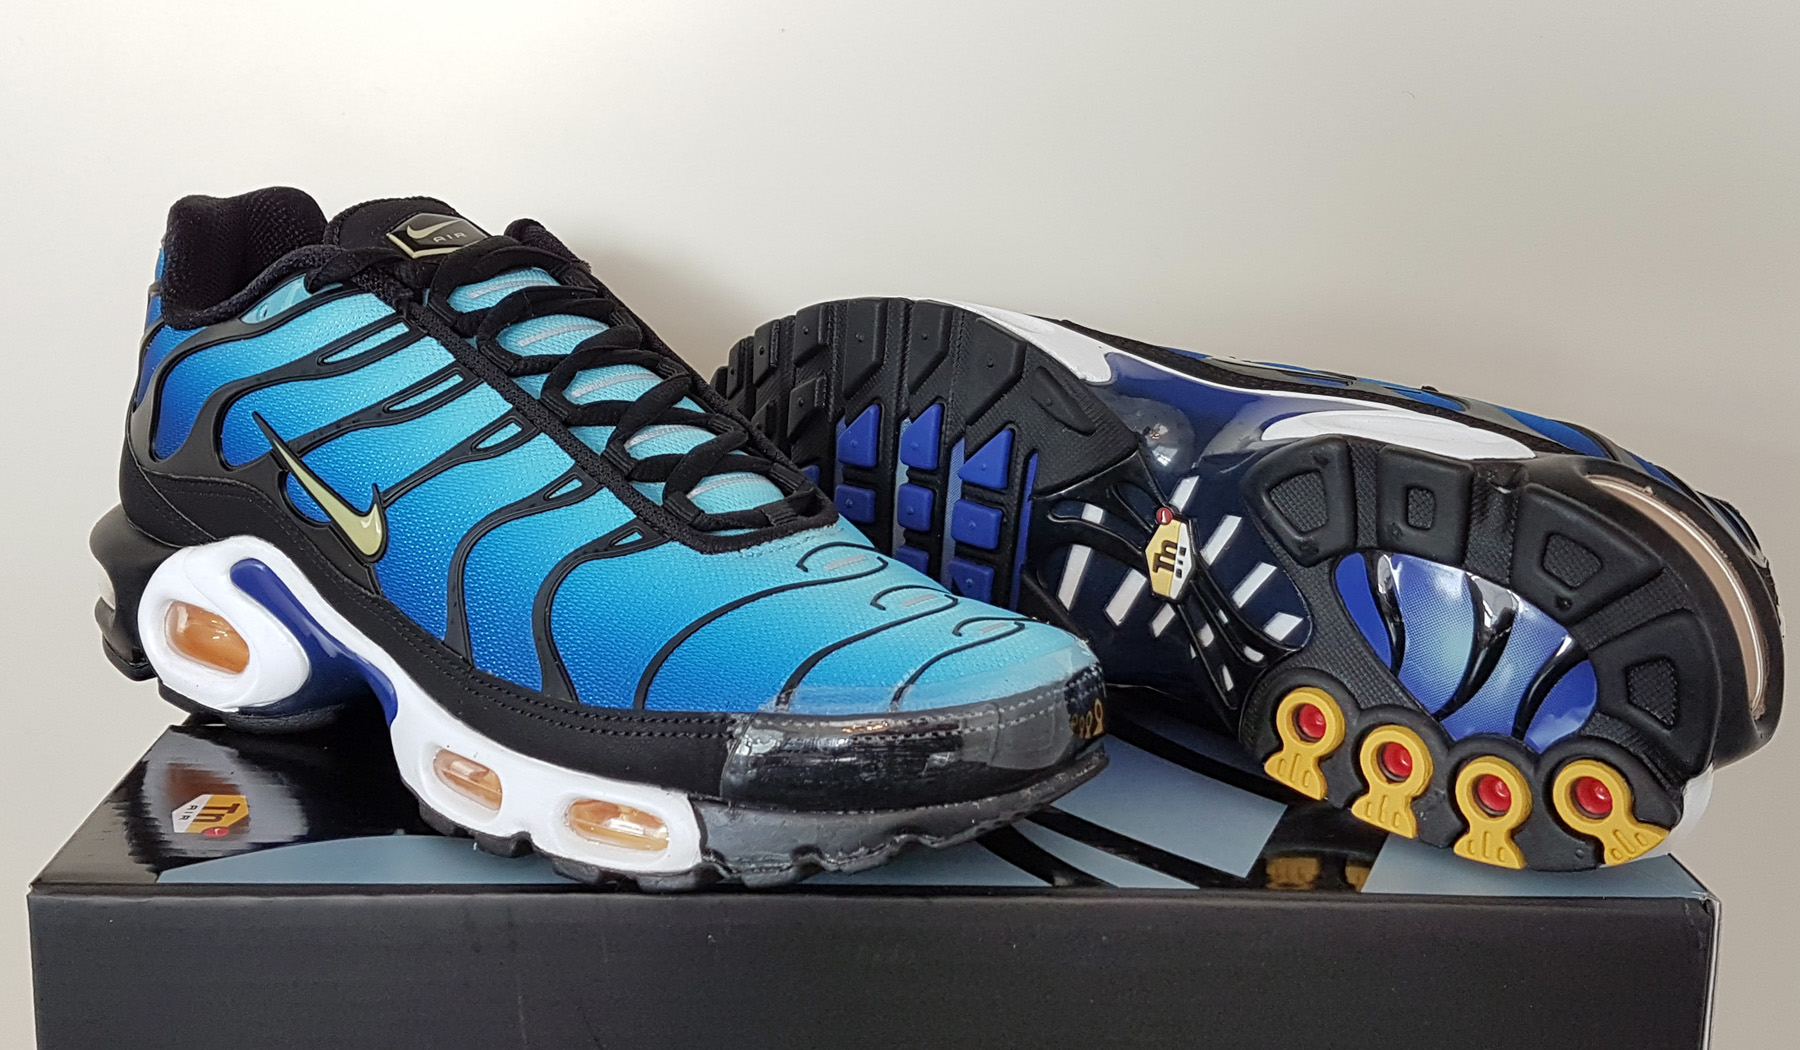 size 40 8318f 18228 File:Air Max Plus Tuned.jpg - Wikimedia Commons